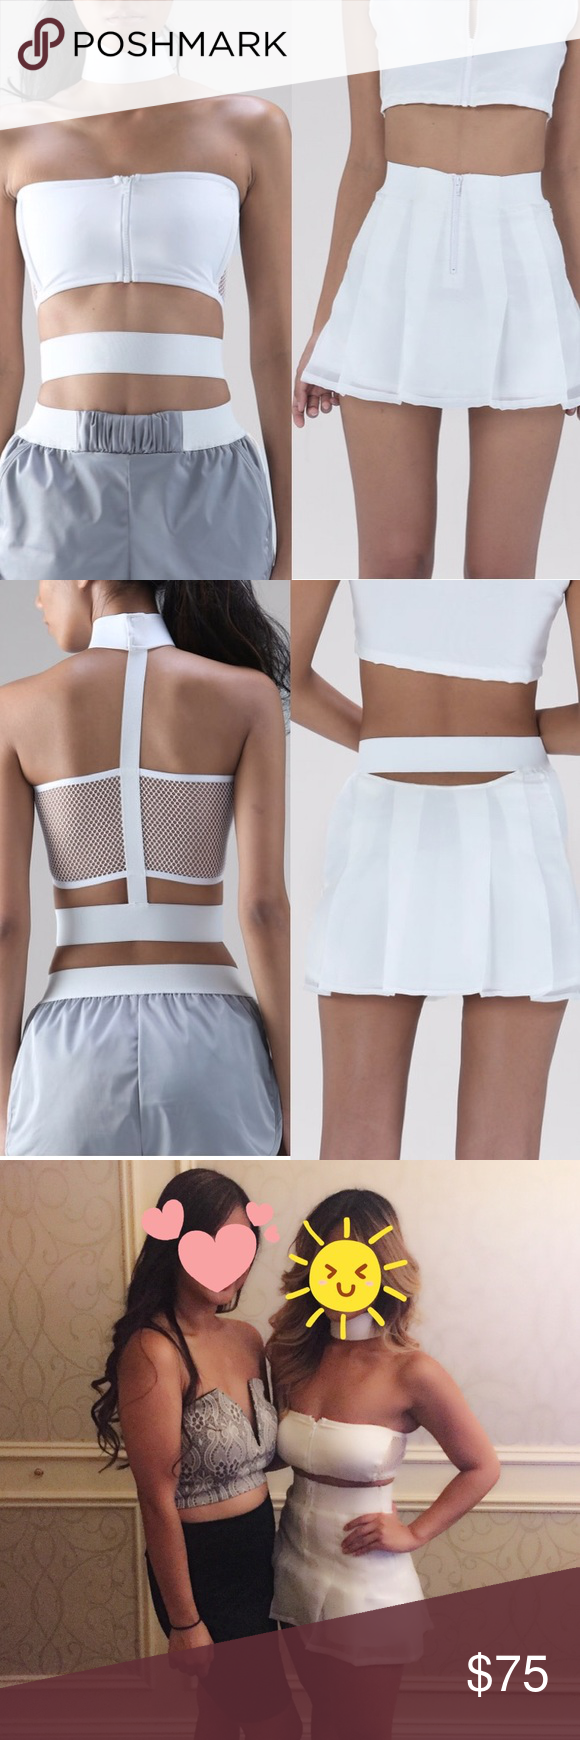 Nun Bangkok Dolls Kill Two Piece Set White Exo Crop - Crop top and Half light skort. Both are a size XS. True to size. Brand is Nun Bangkok. Worn once. Definitely a double taker. Super edgy! Selling both the choker top and skirt has shorts attached. Tags: Nasty gal Missguided Sabo Skirt Tobi NunBangkok Tops Crop Tops